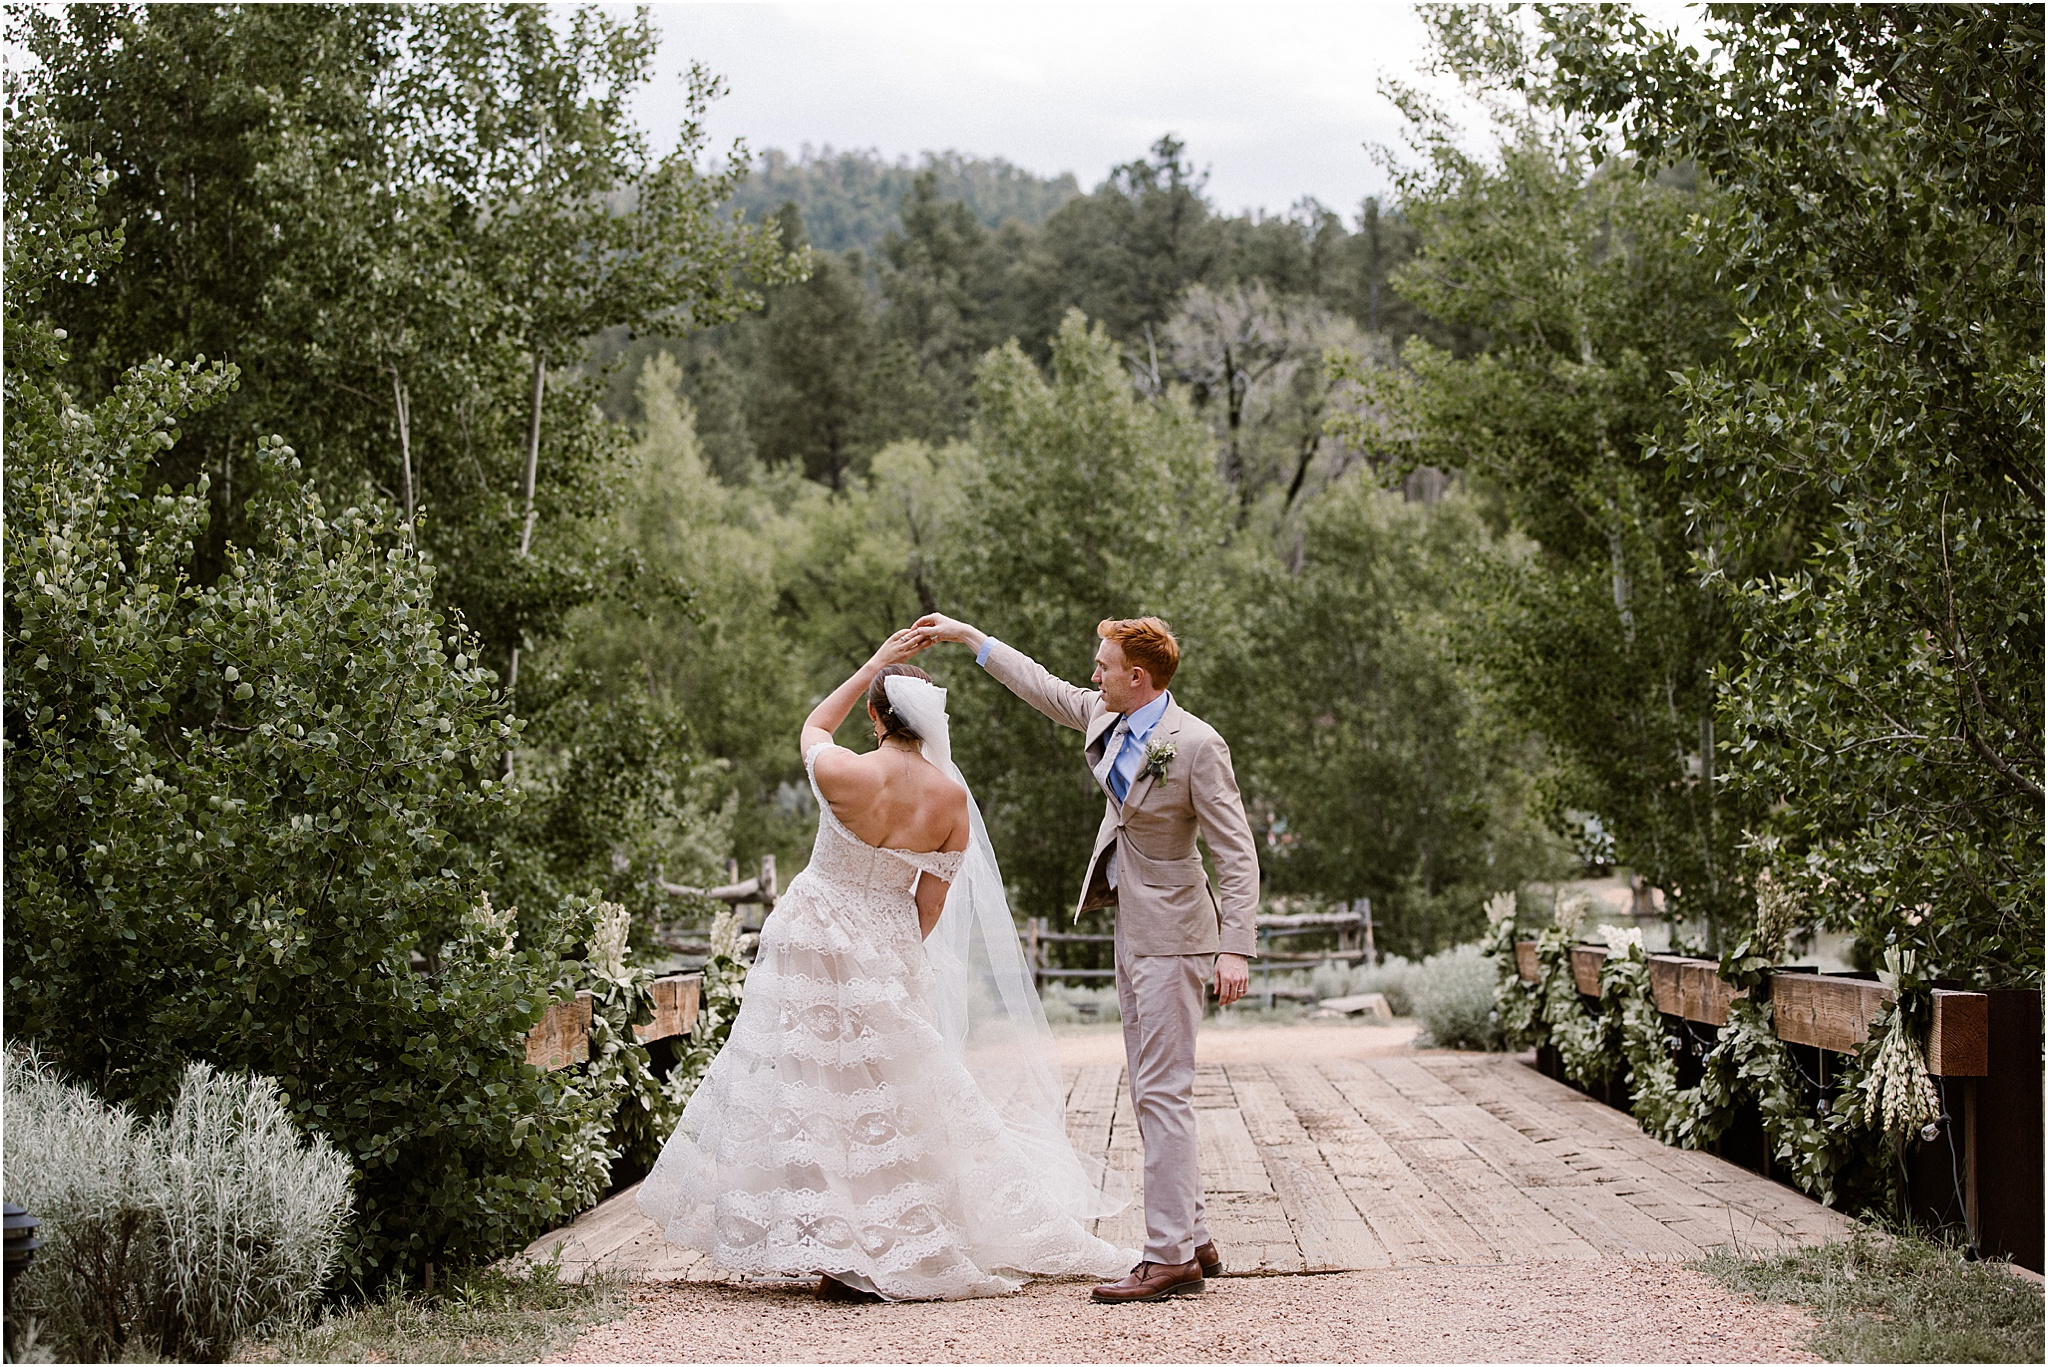 AMELIA_JASON_SANTA FE_ WEDDING_BLUE ROSE PHOTOGRAPHY95